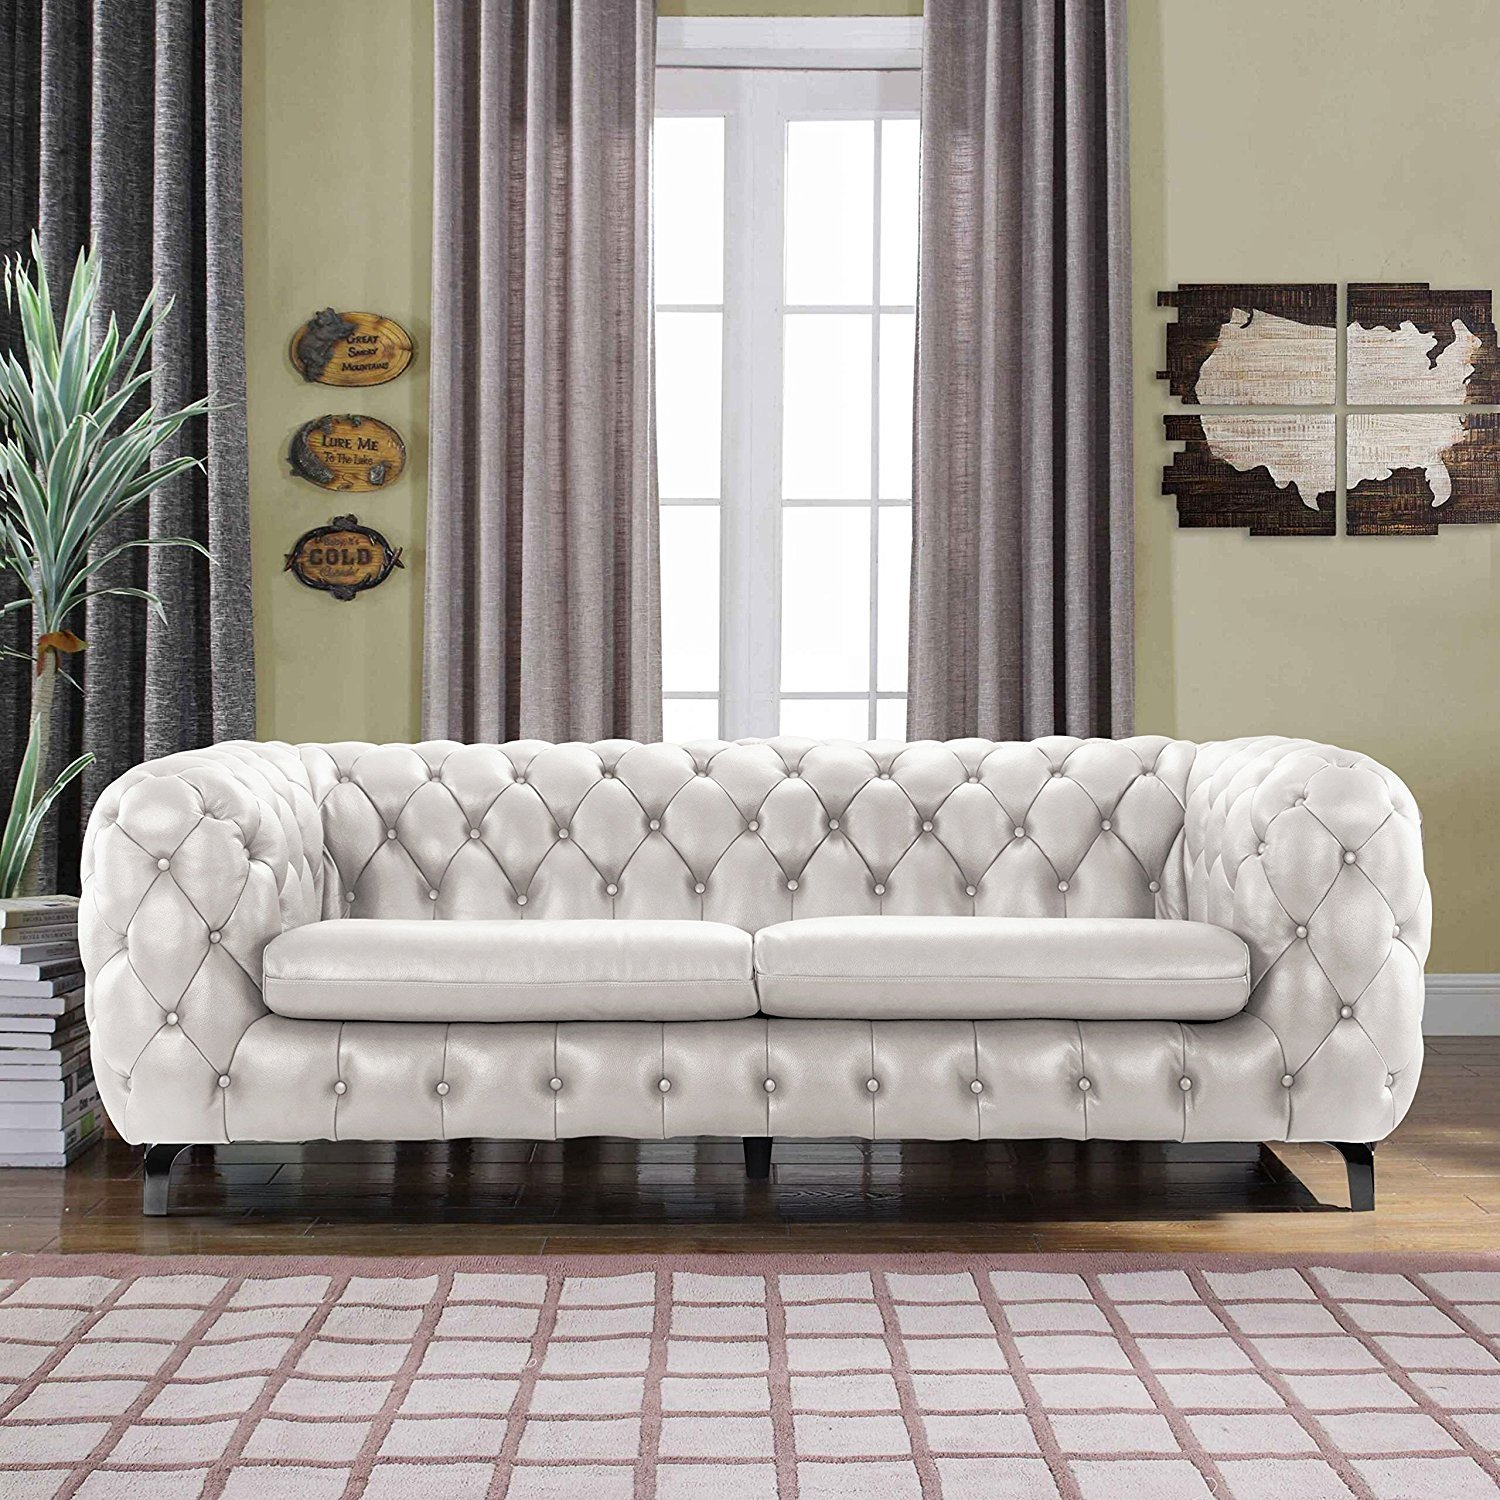 Buy Fh 5328 Fully Tufted Chester Sofa Online At Discount Regarding Sofas And Chairs (View 8 of 15)